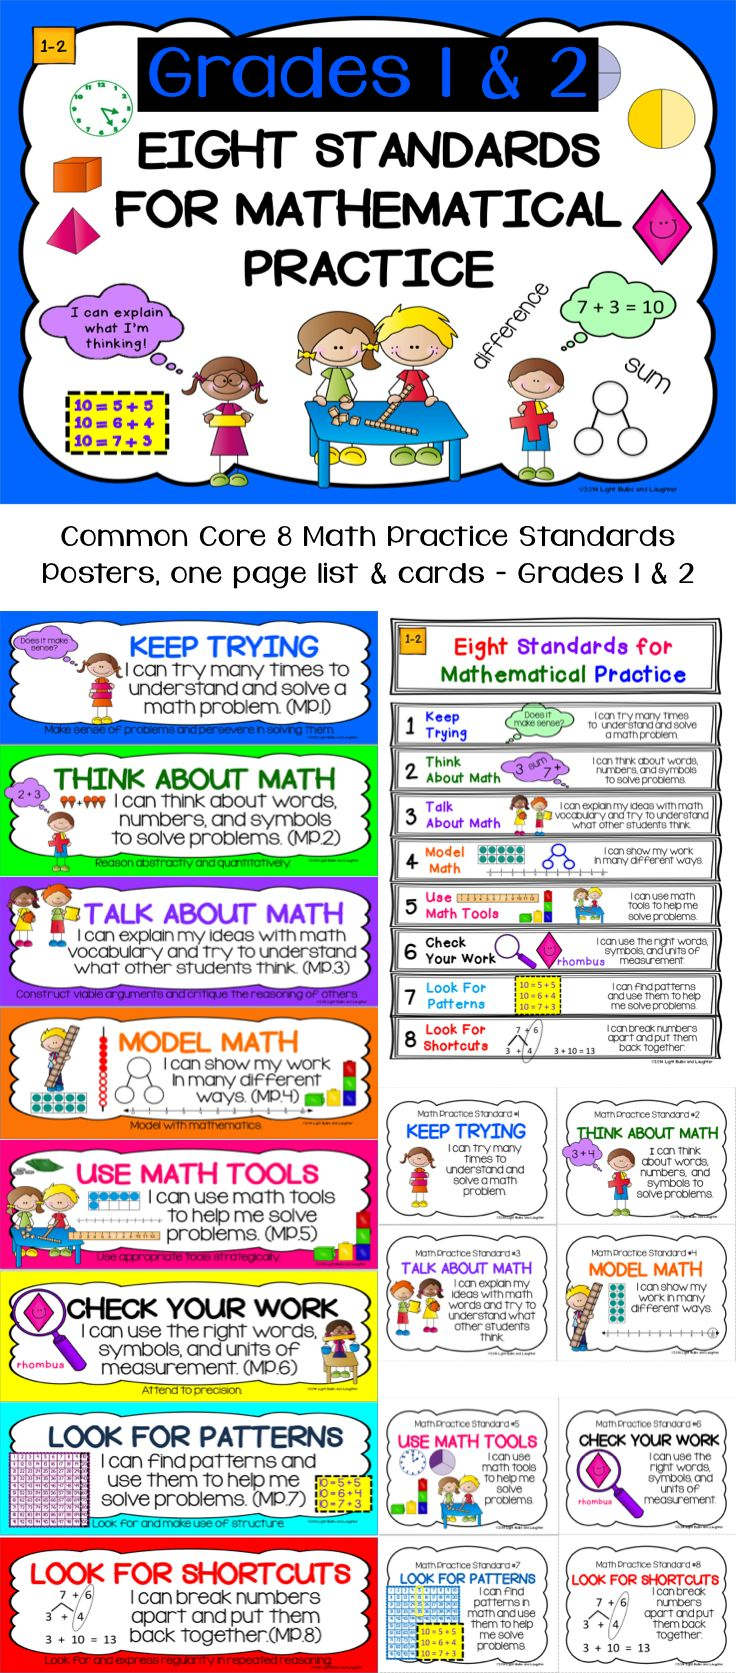 8 Math Practice Standards for grades 1-2 in kid-friendly language!  Posters for whiteboard, one page list, cards to put on rings. $4 on TpT